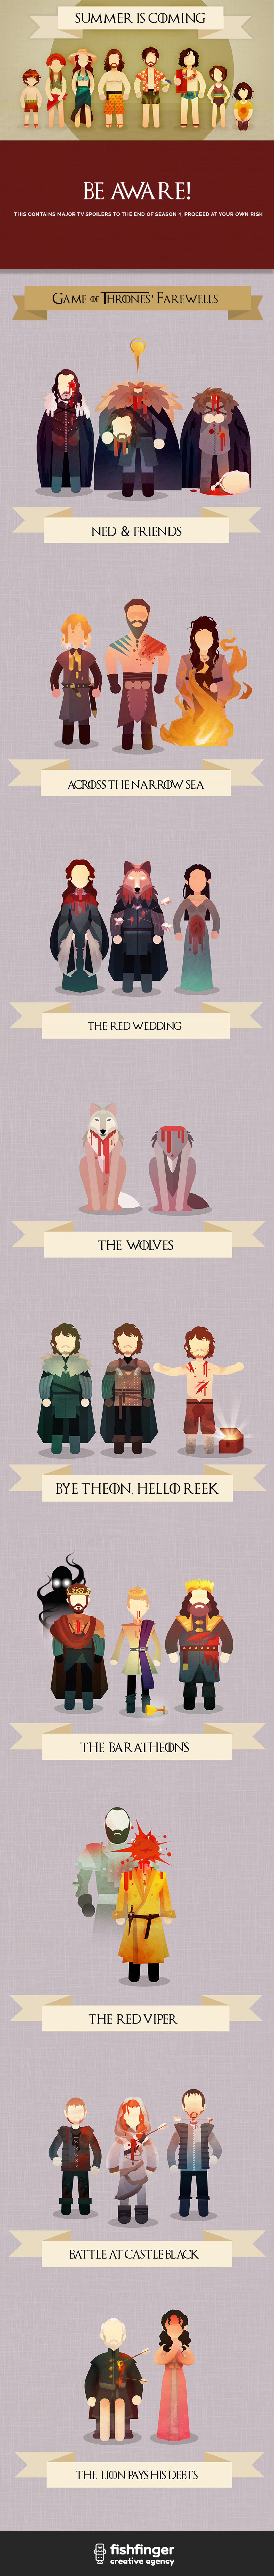 Game of Thrones Farewell Illustrations Infographic